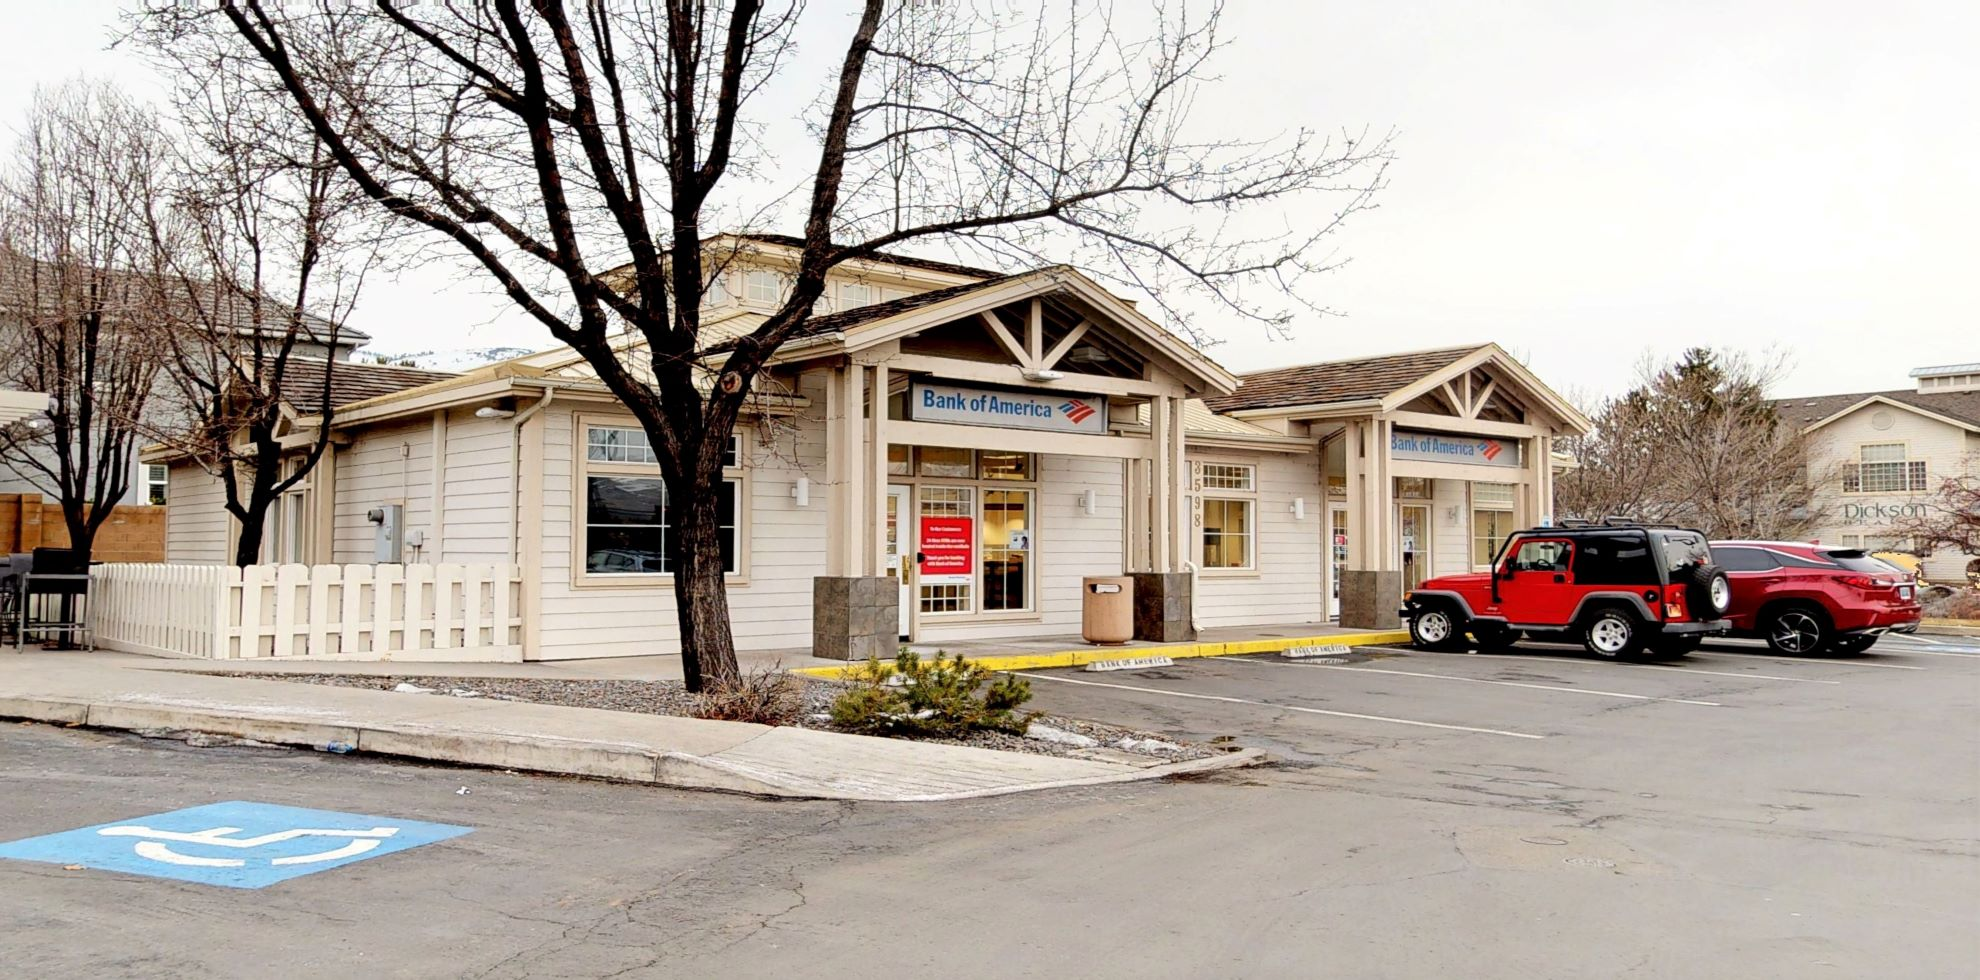 Bank of America financial center with walk-up ATM   3598 W Plumb Ln, Reno, NV 89509